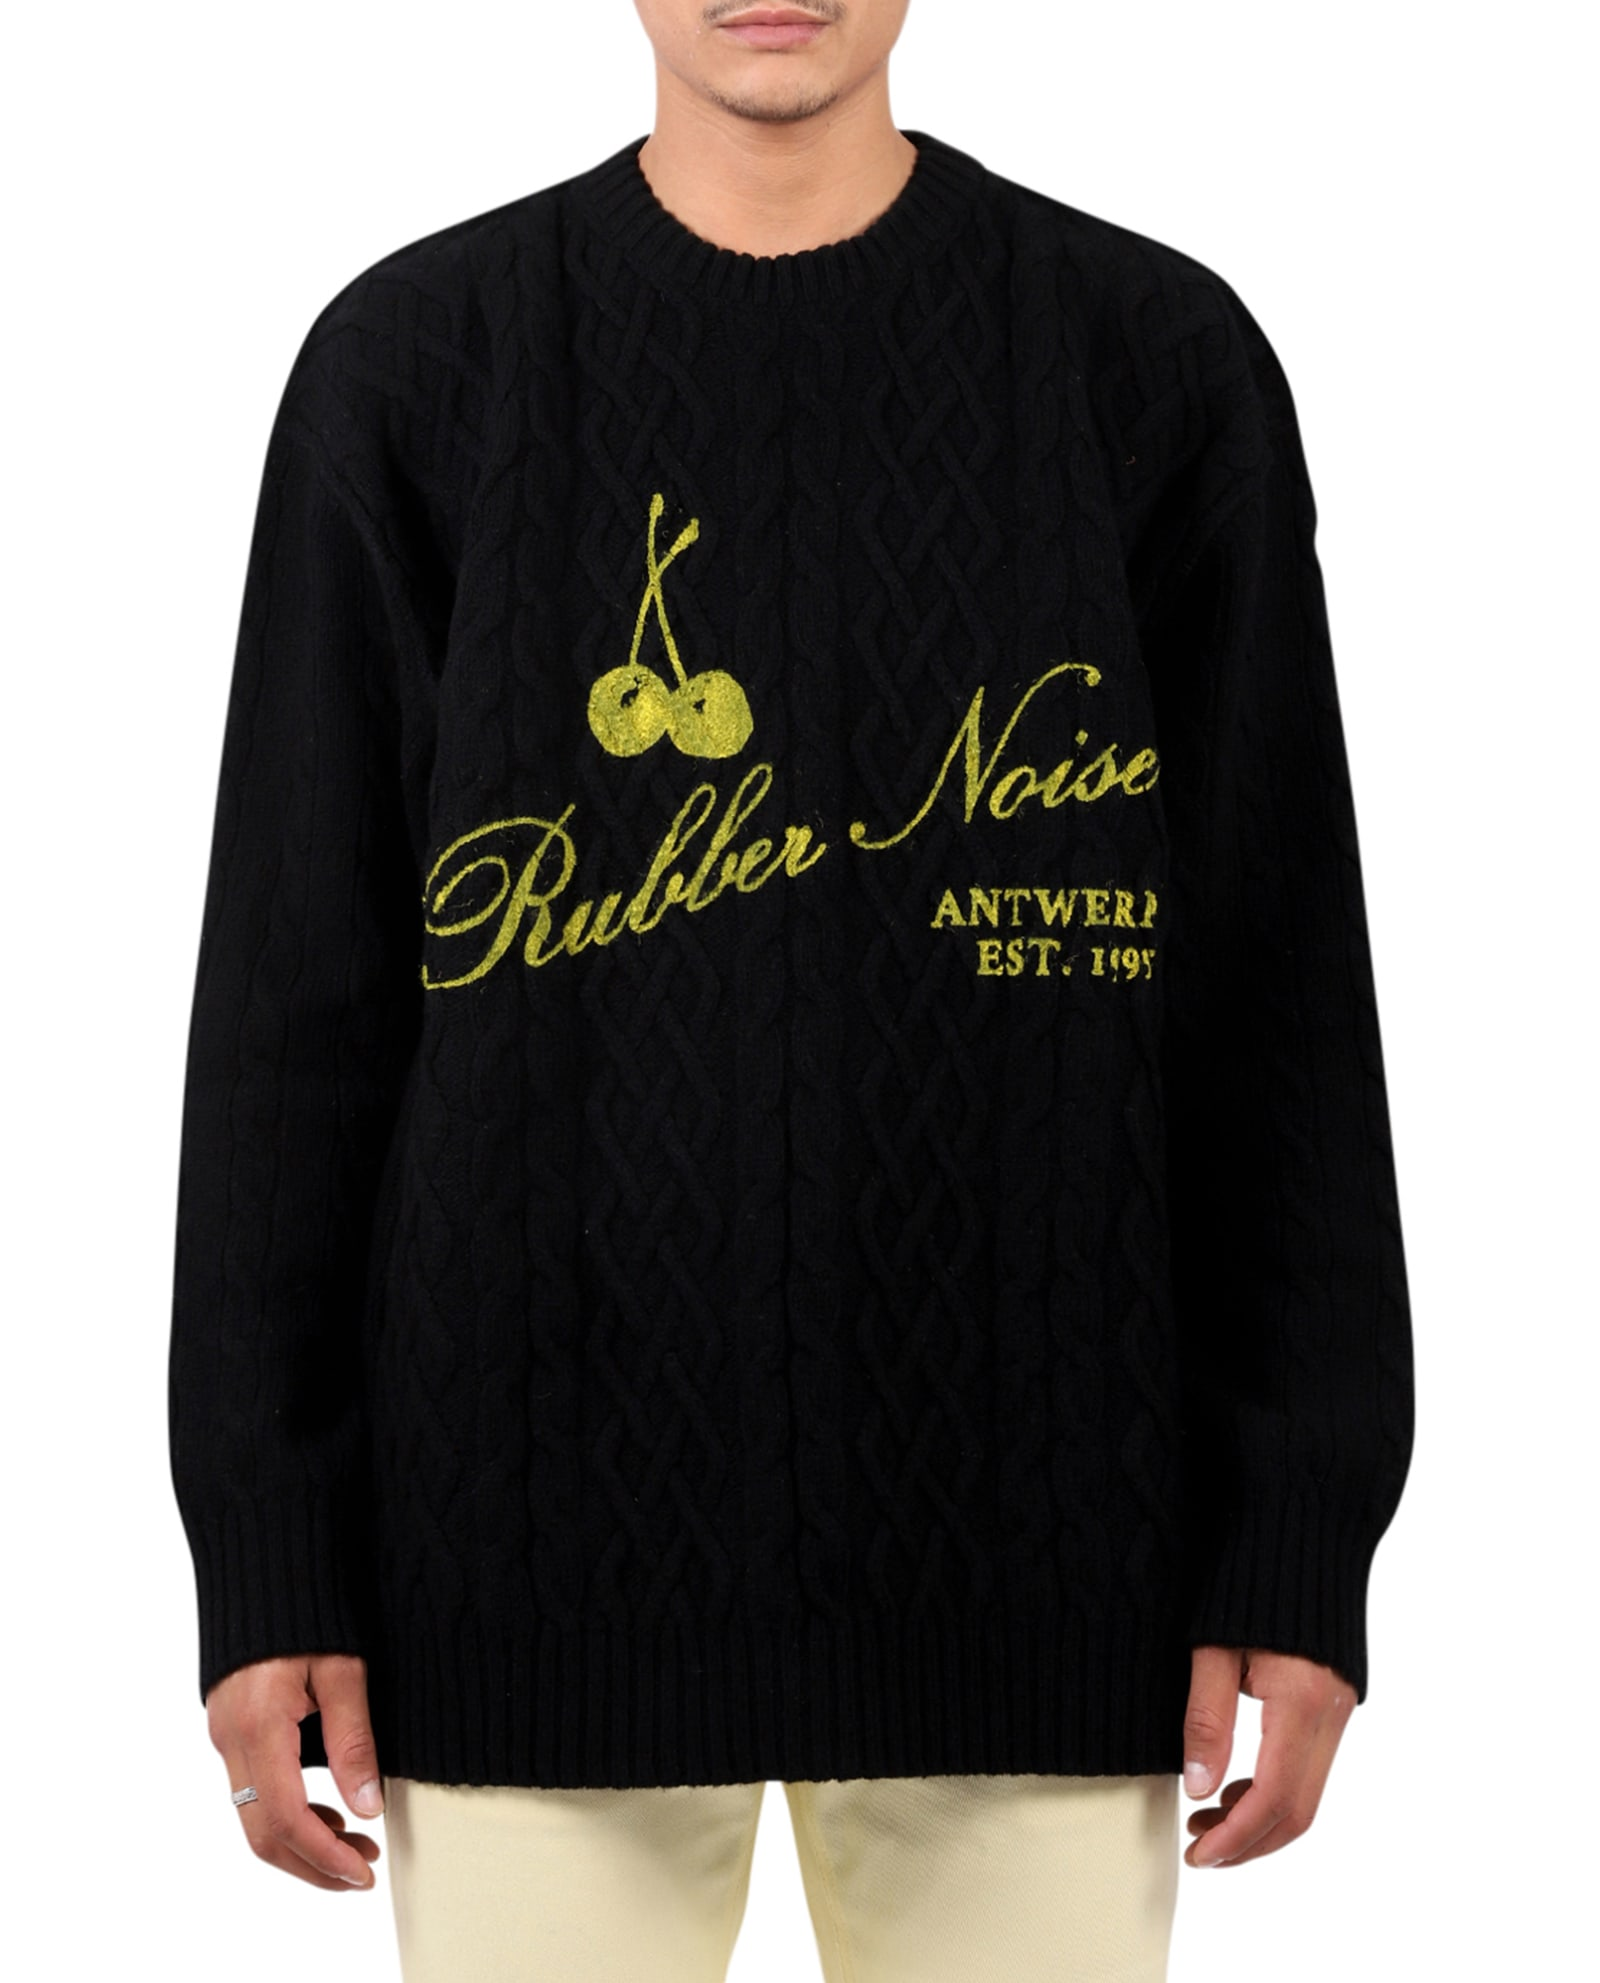 Raf Simons Knits BLACK ARAN KNIT SWEATER